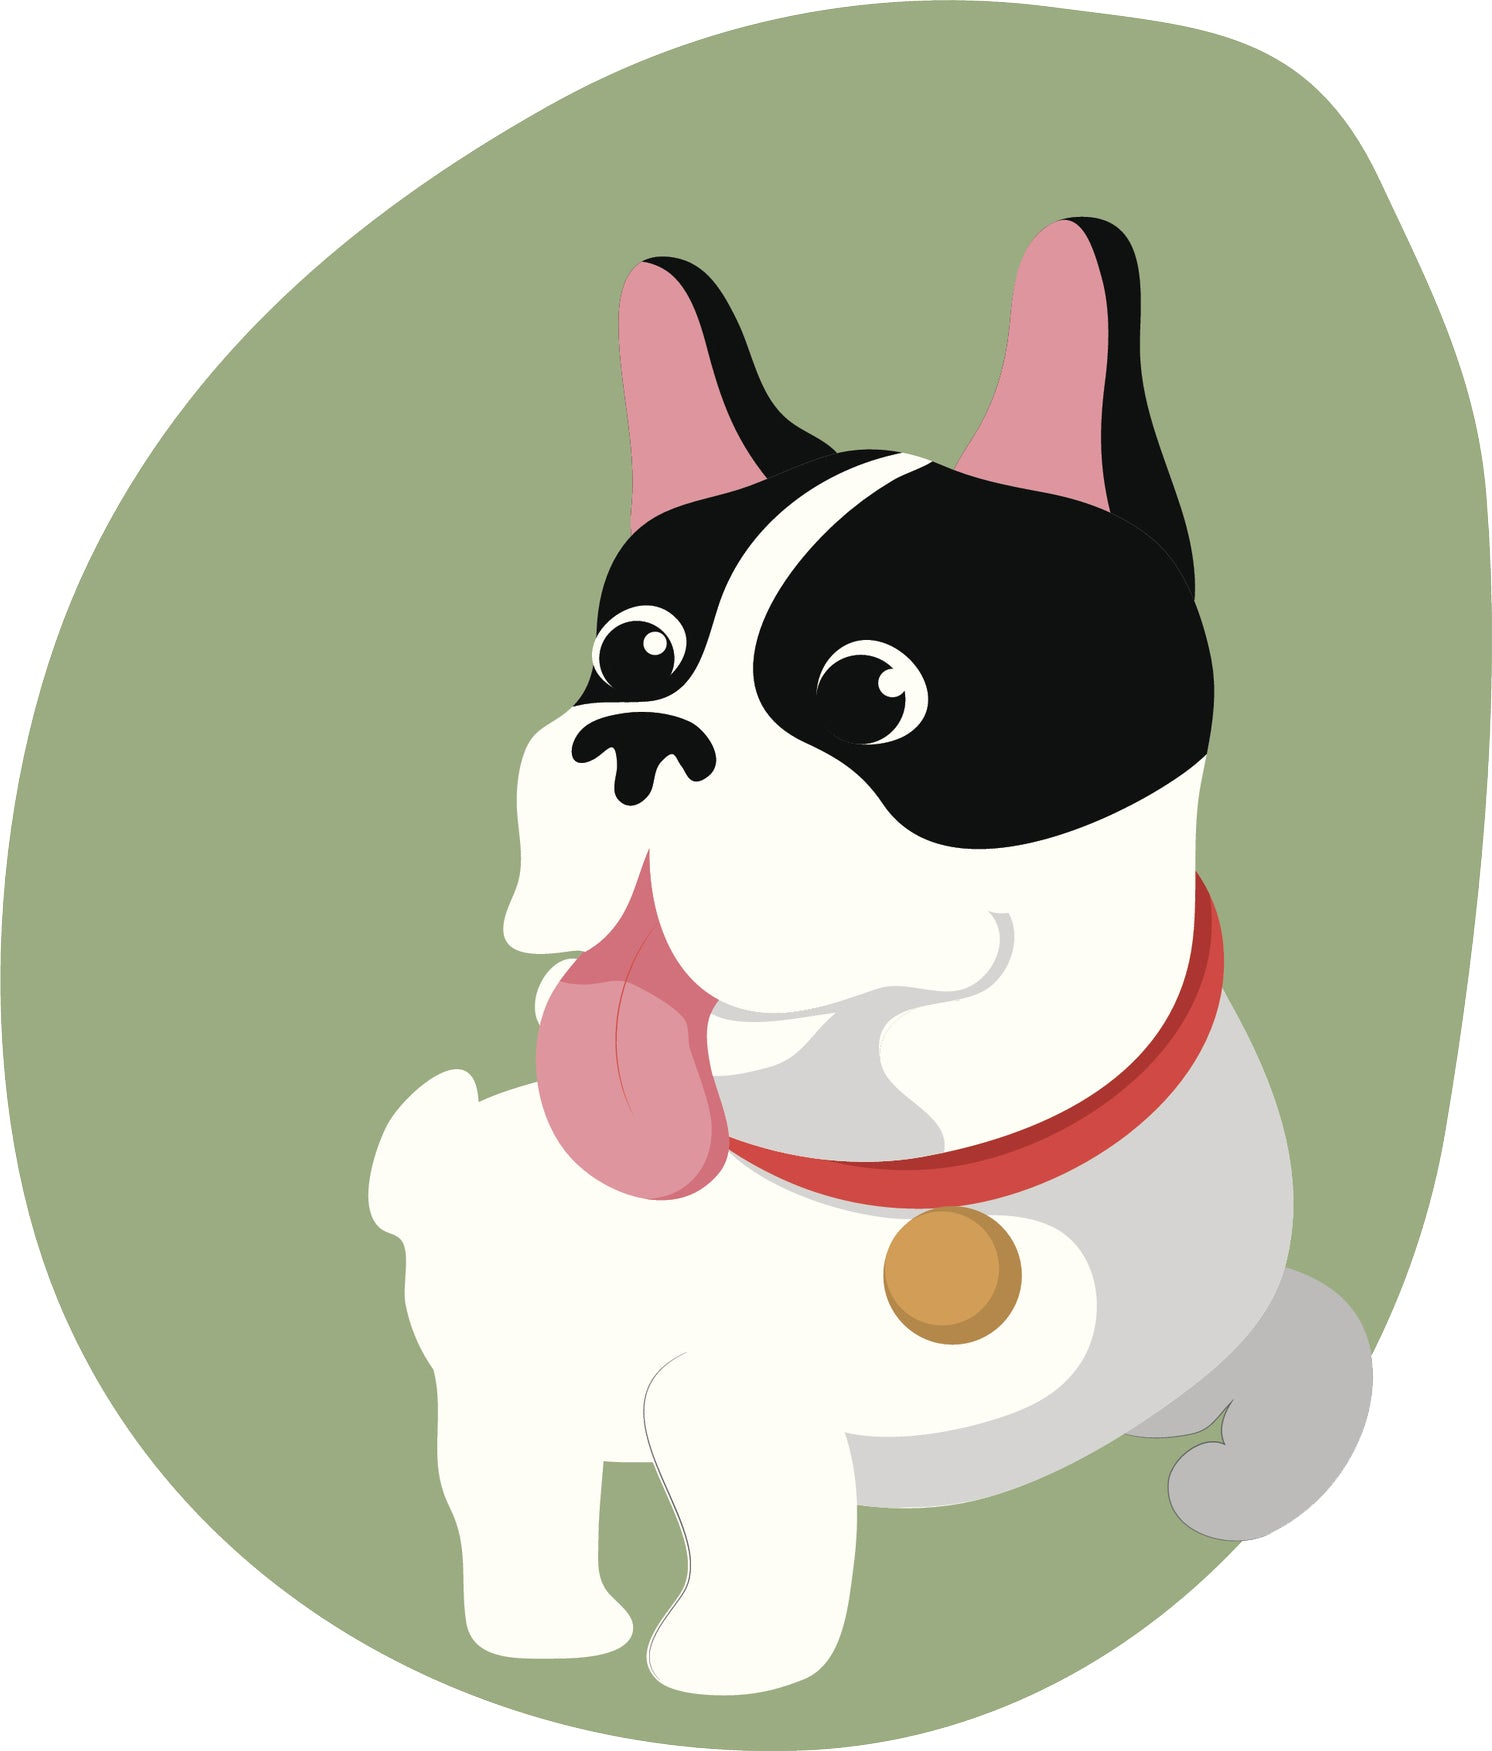 Adorable Happy Boston Terrier Frenchie Puppy Dog #2 Vinyl Decal Sticker